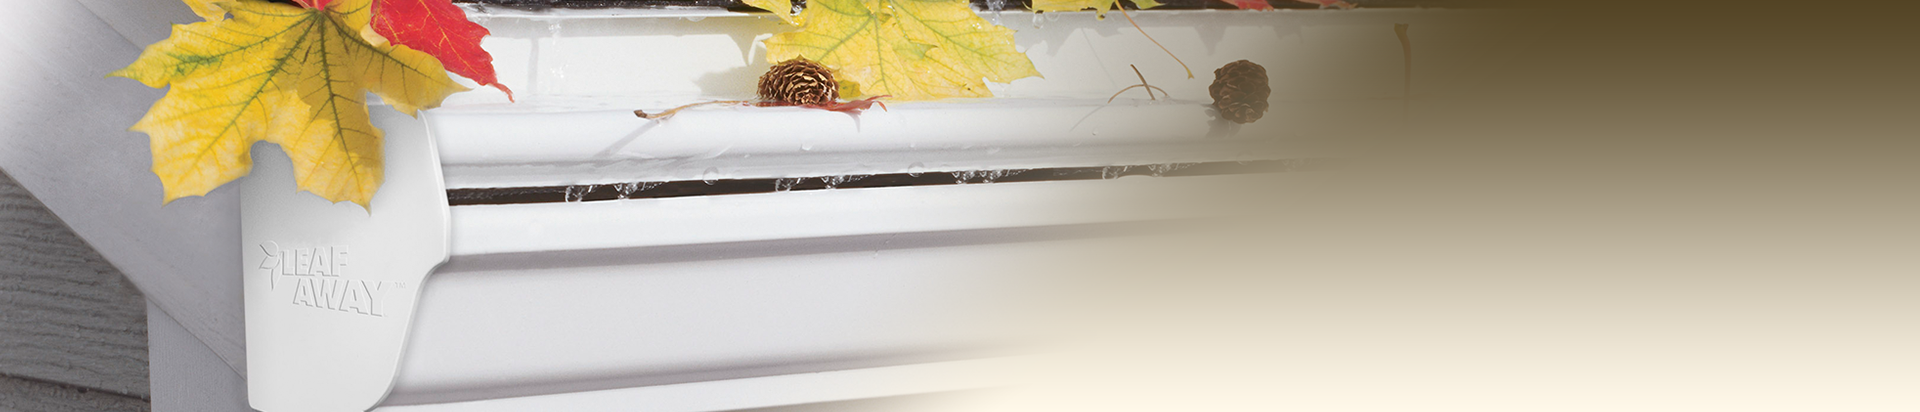 Leafaway-gutters-slideshow.png